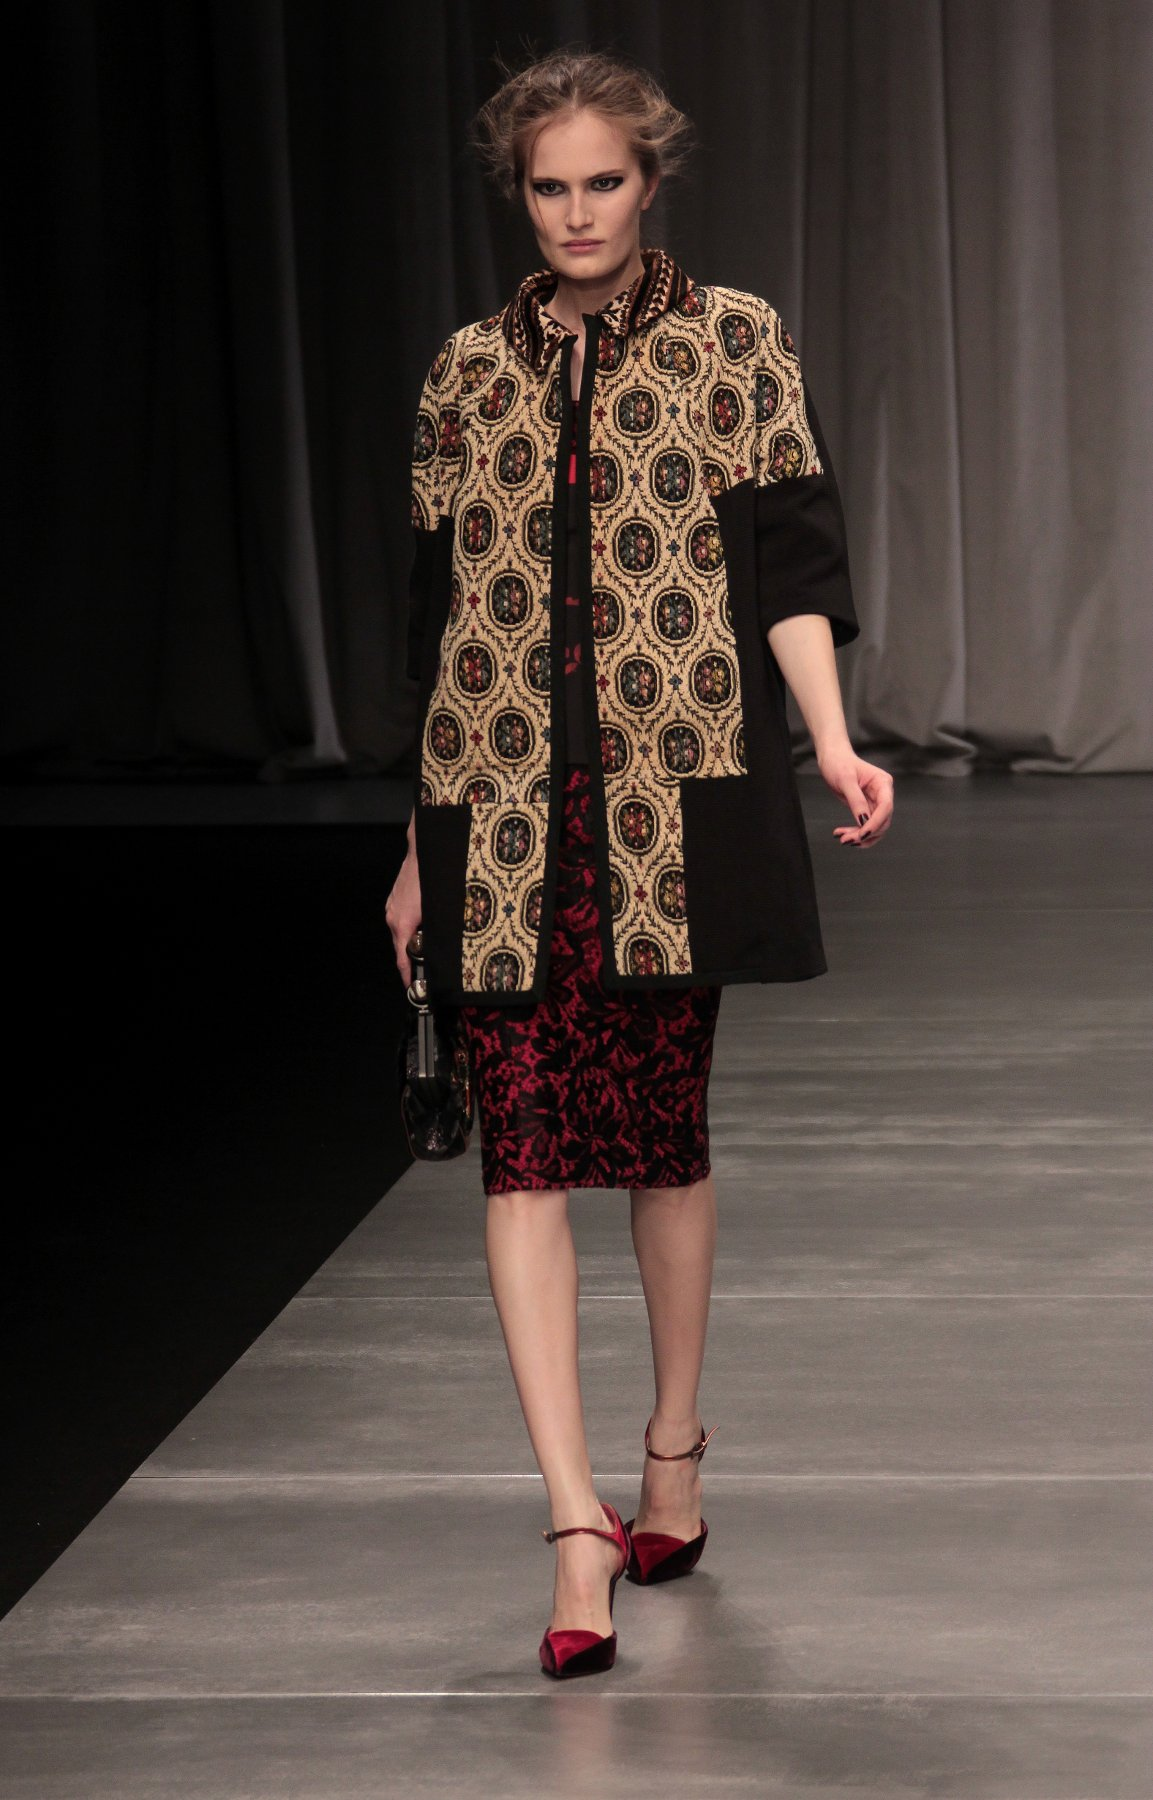 Antonio Marras Fall Winter 2012-13 Catwalk